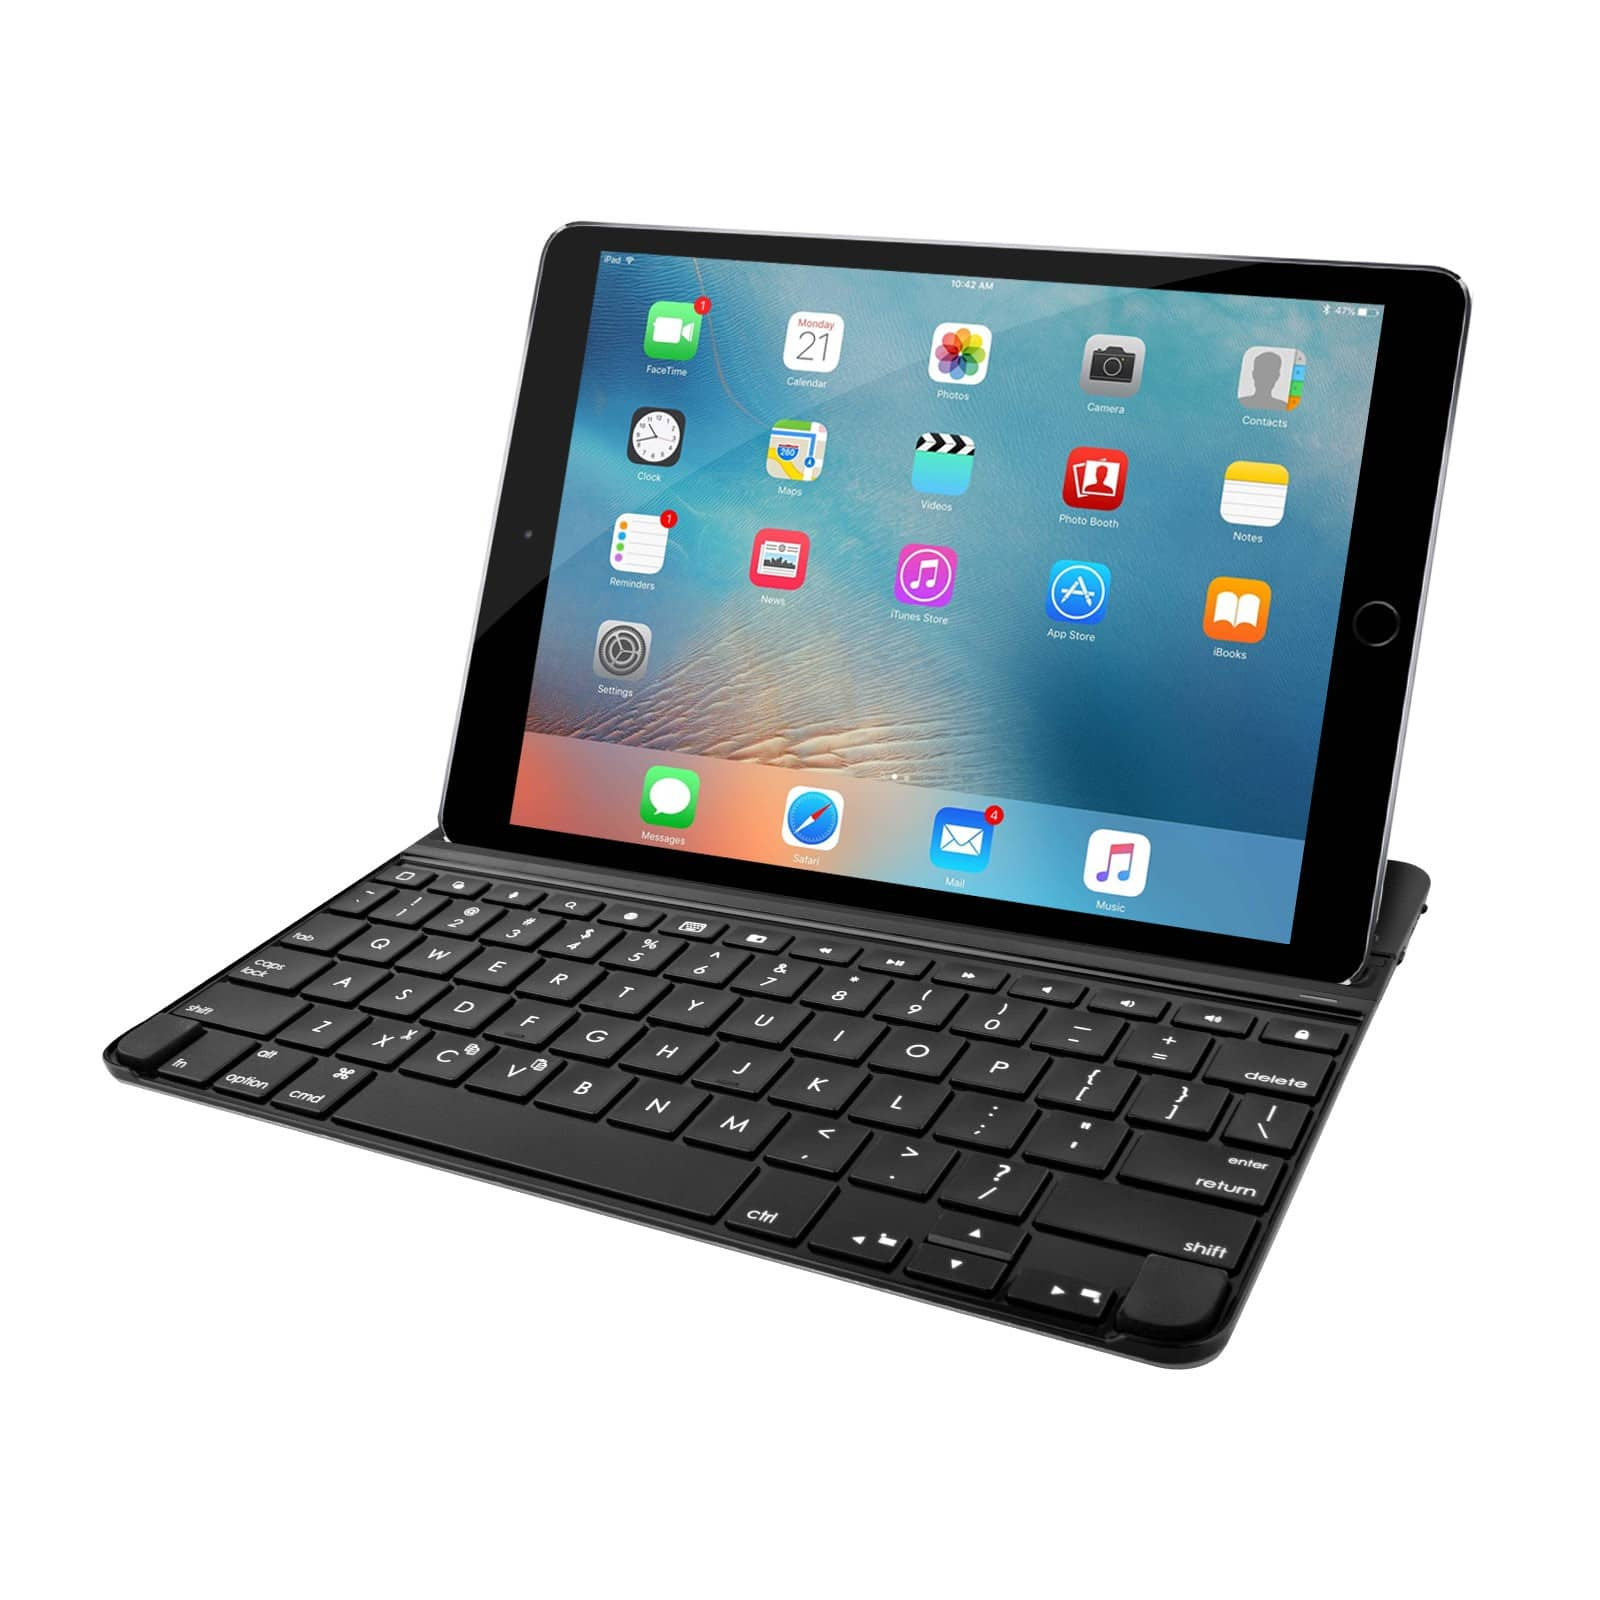 Logitech Keyboards (Refurb): iPad Air, iPad Mini 1/2/3 & More ...